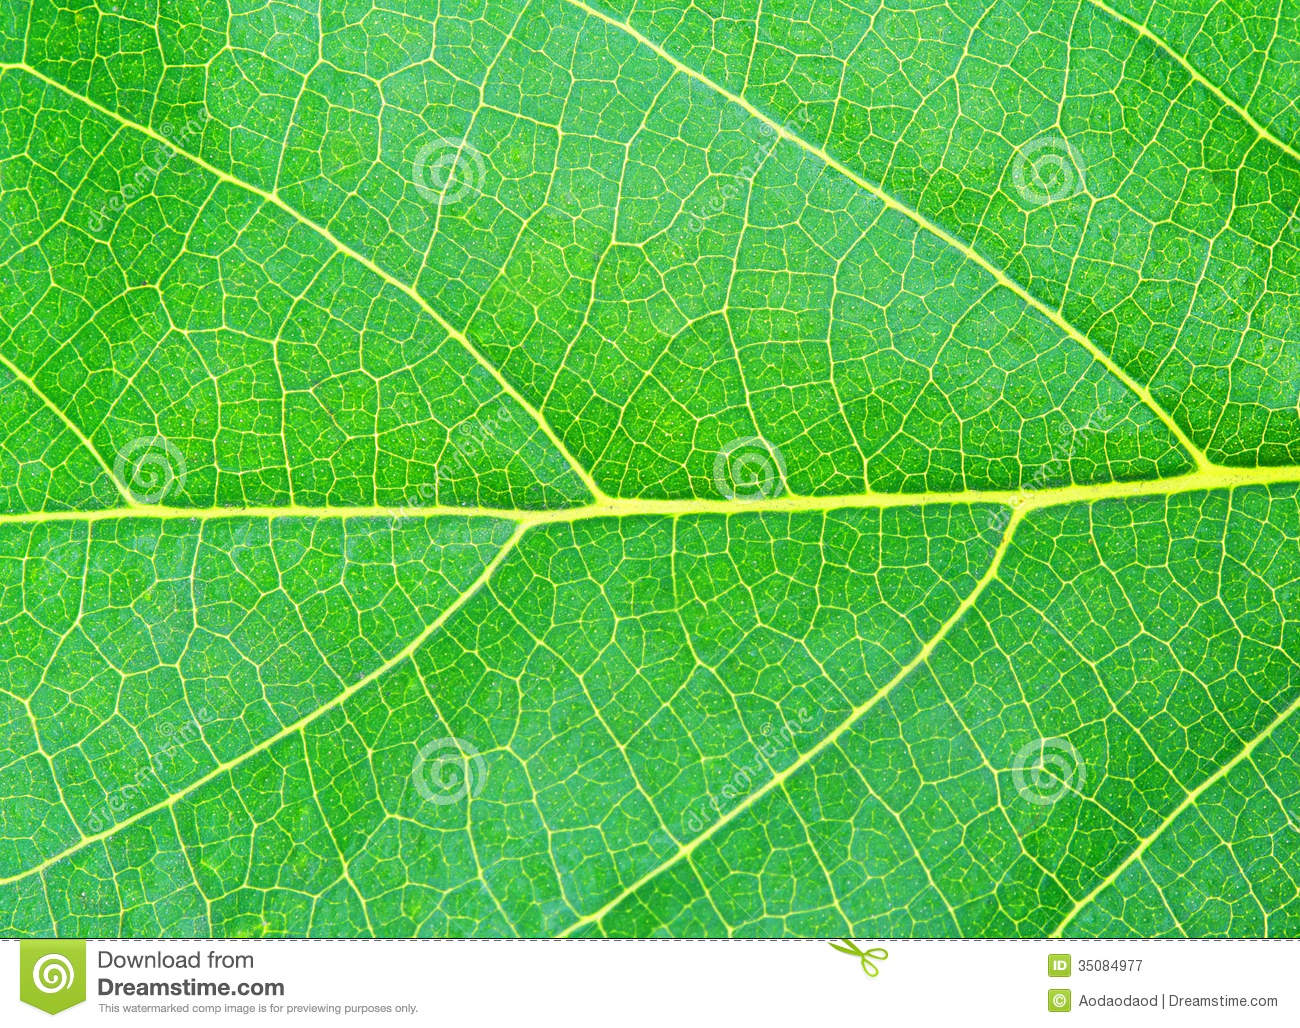 Green natural leaf texture stock image. Image of backdrop - 35084977